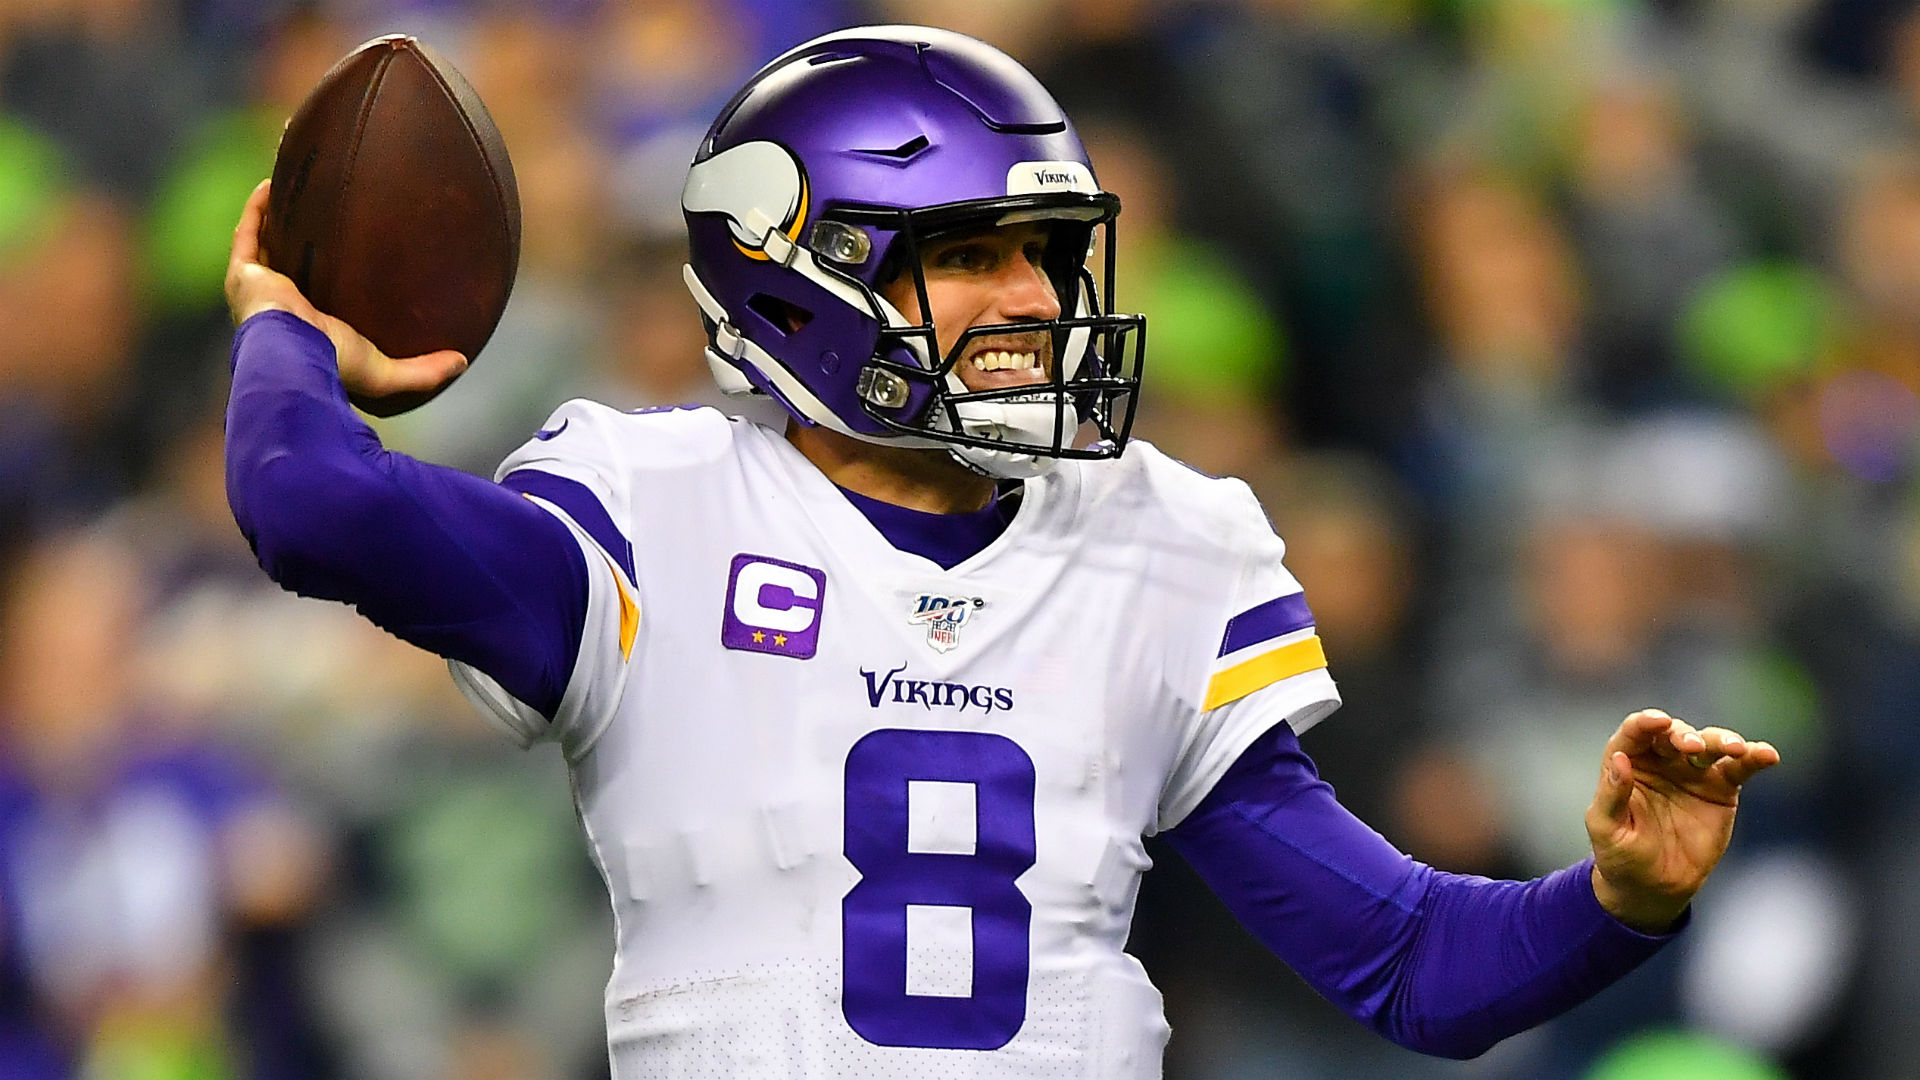 Vikings schedule 2020: Dates & times for all 16 games, strength of schedule, final record prediction